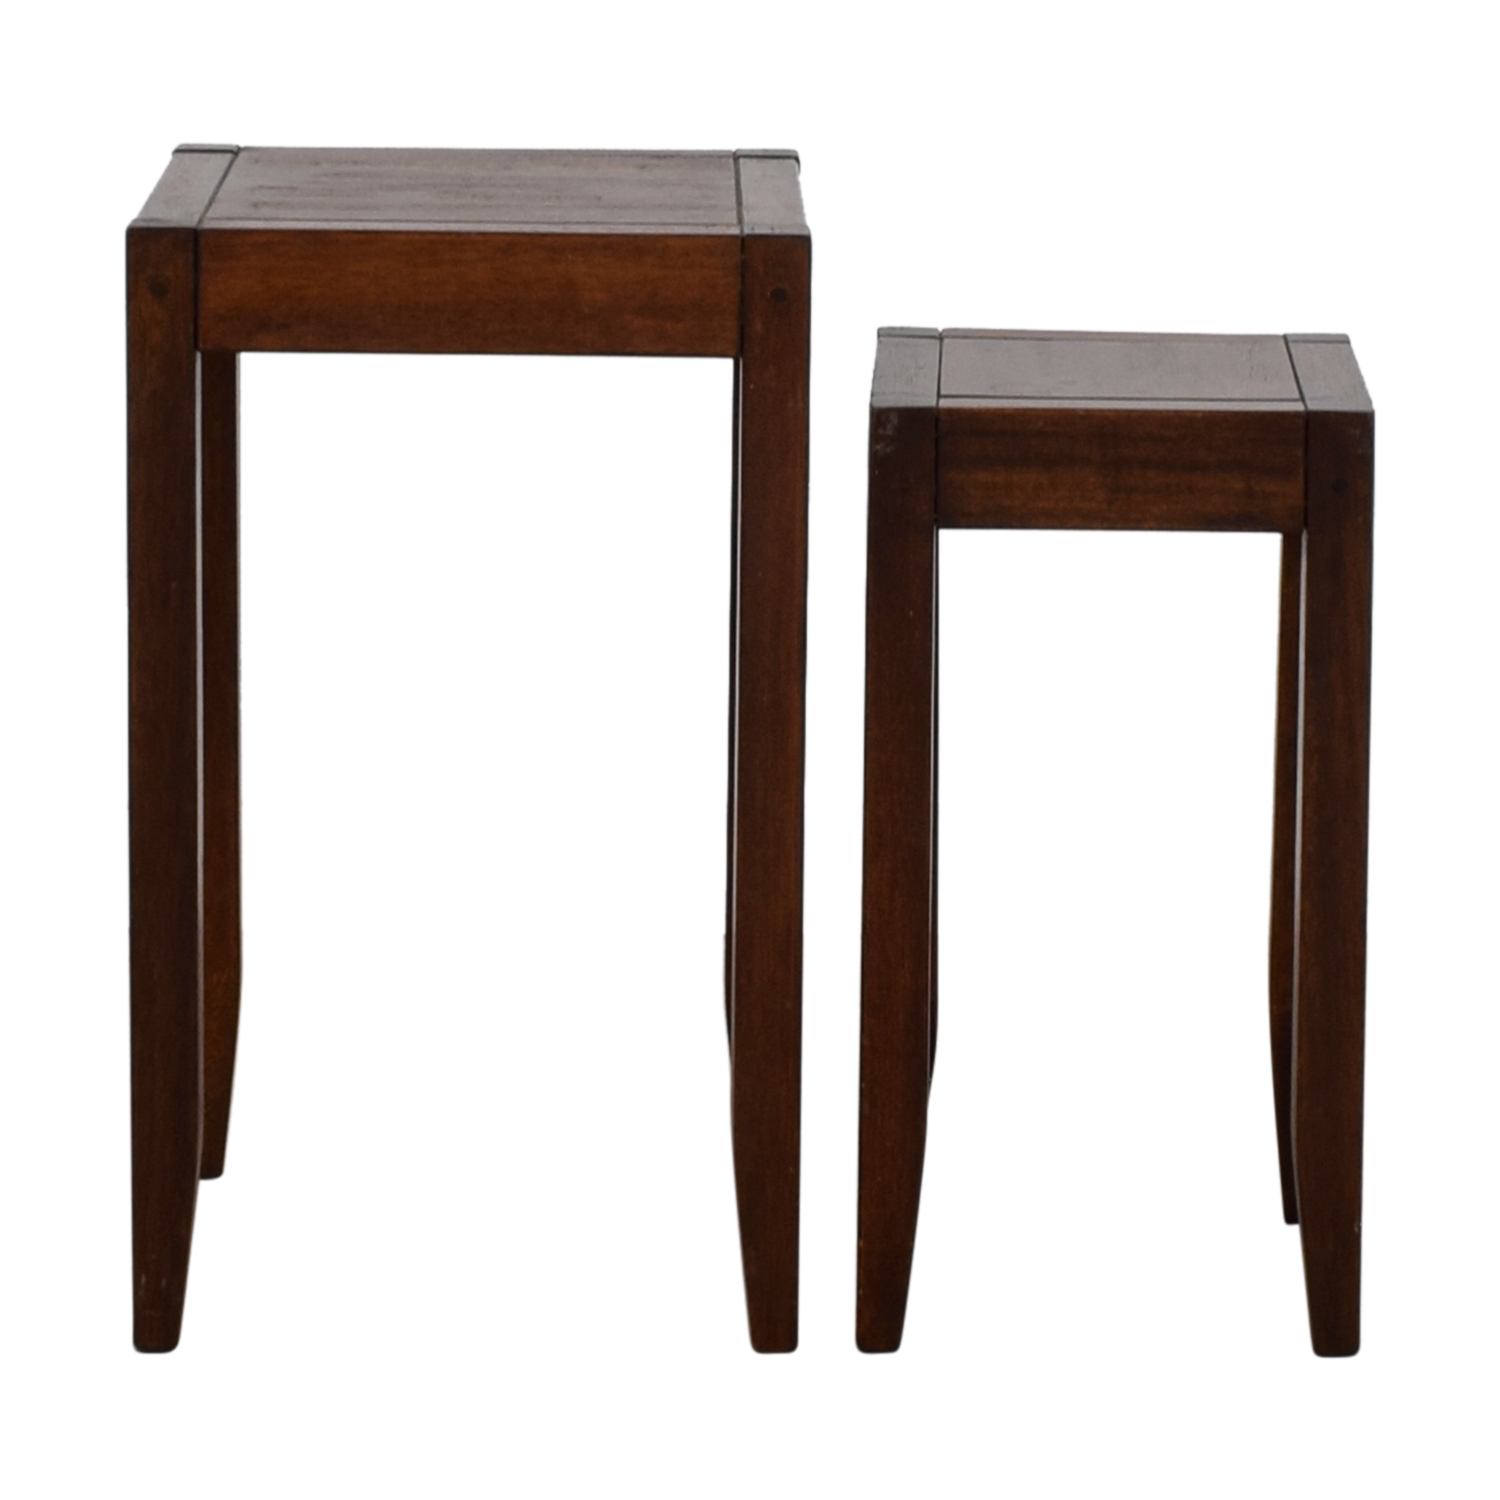 Wes Nesting Tables Pottery Barn: Pottery Barn Pottery Barn Block Wooden Nesting